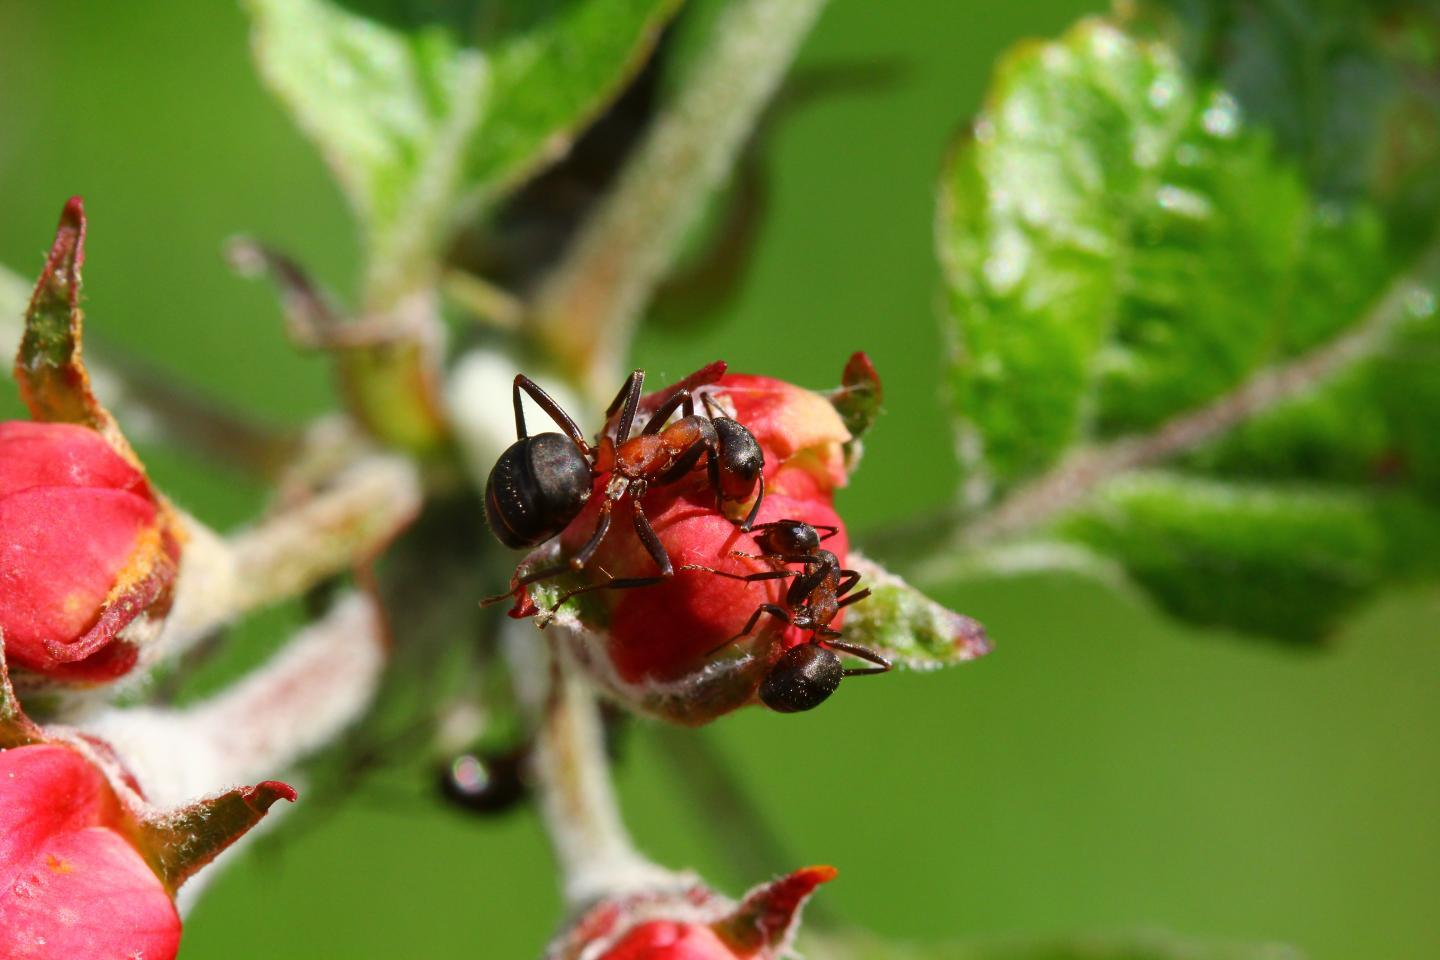 Wood ants foraging within an apple orchard